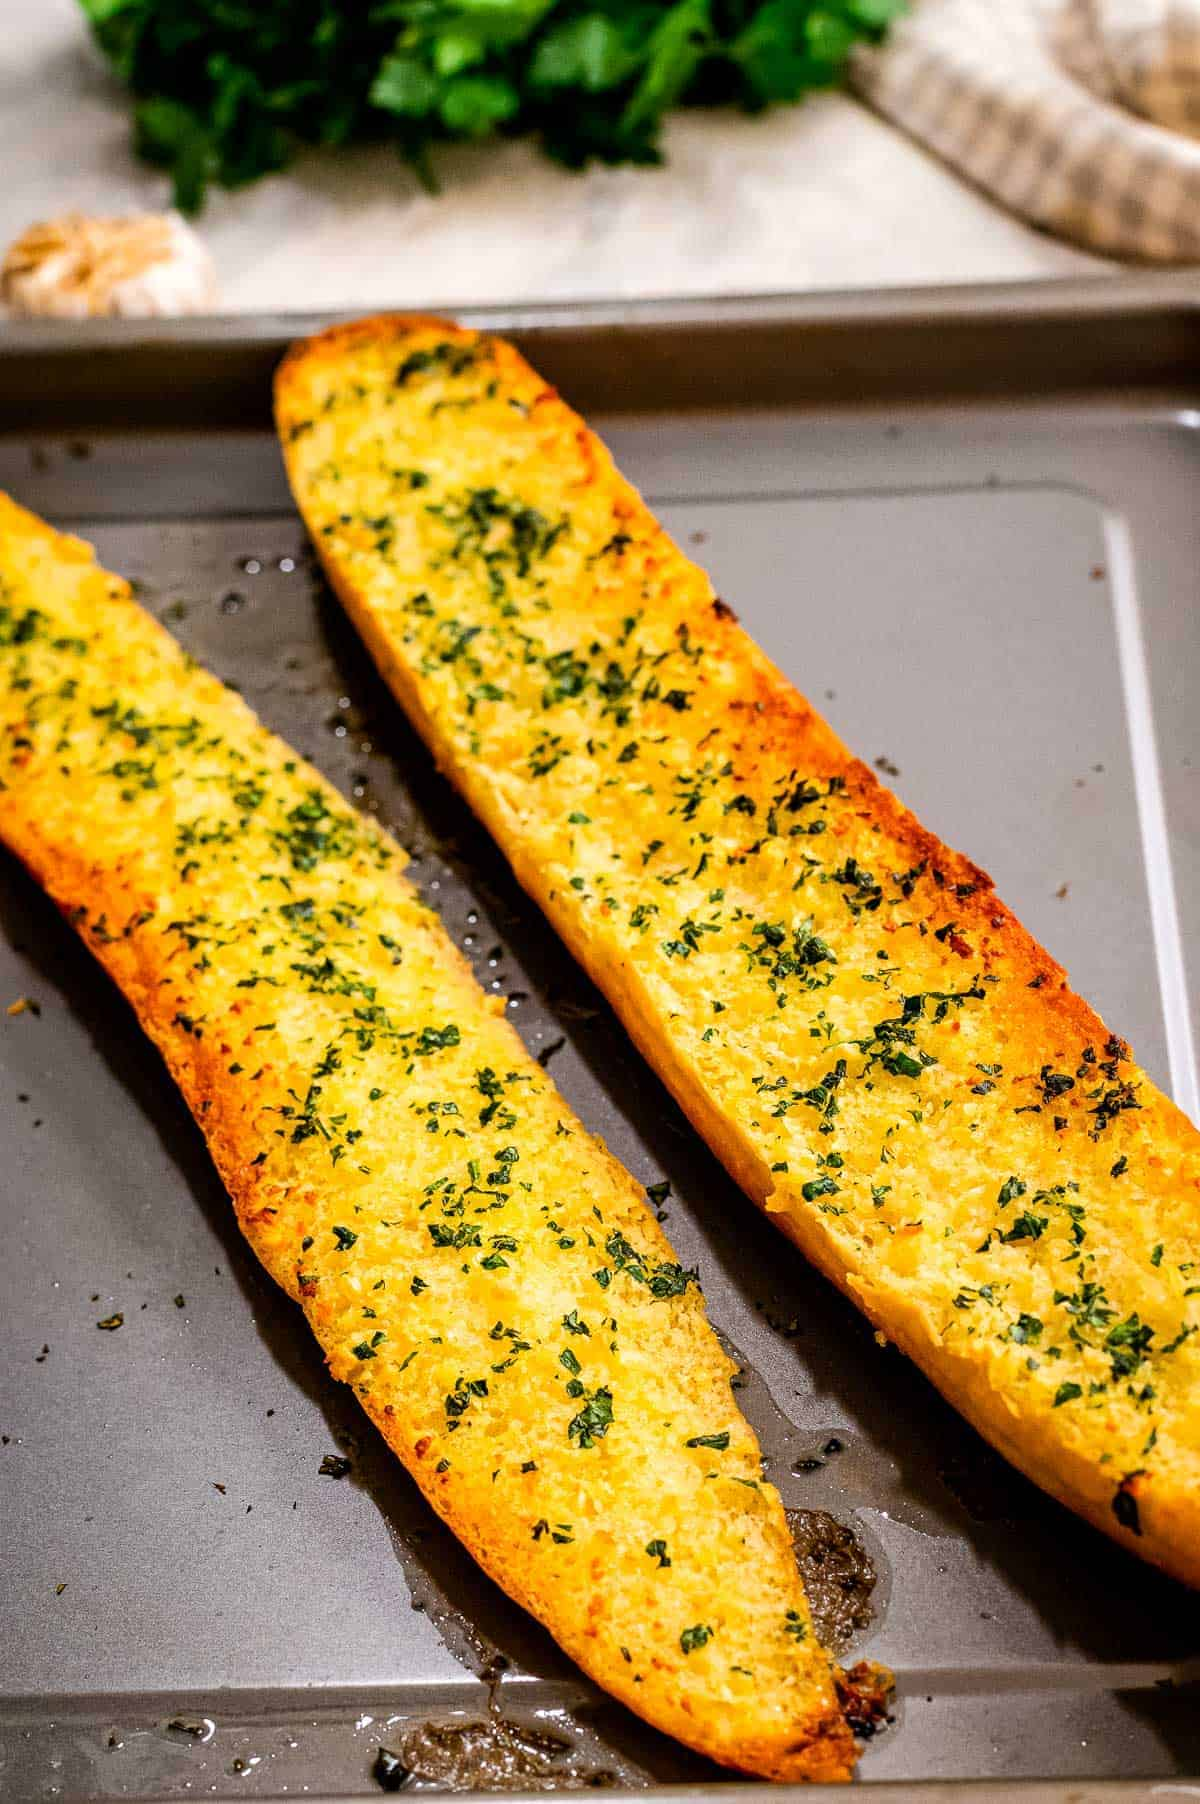 Two halves of French Bread baked with garlic butter on sheet pan